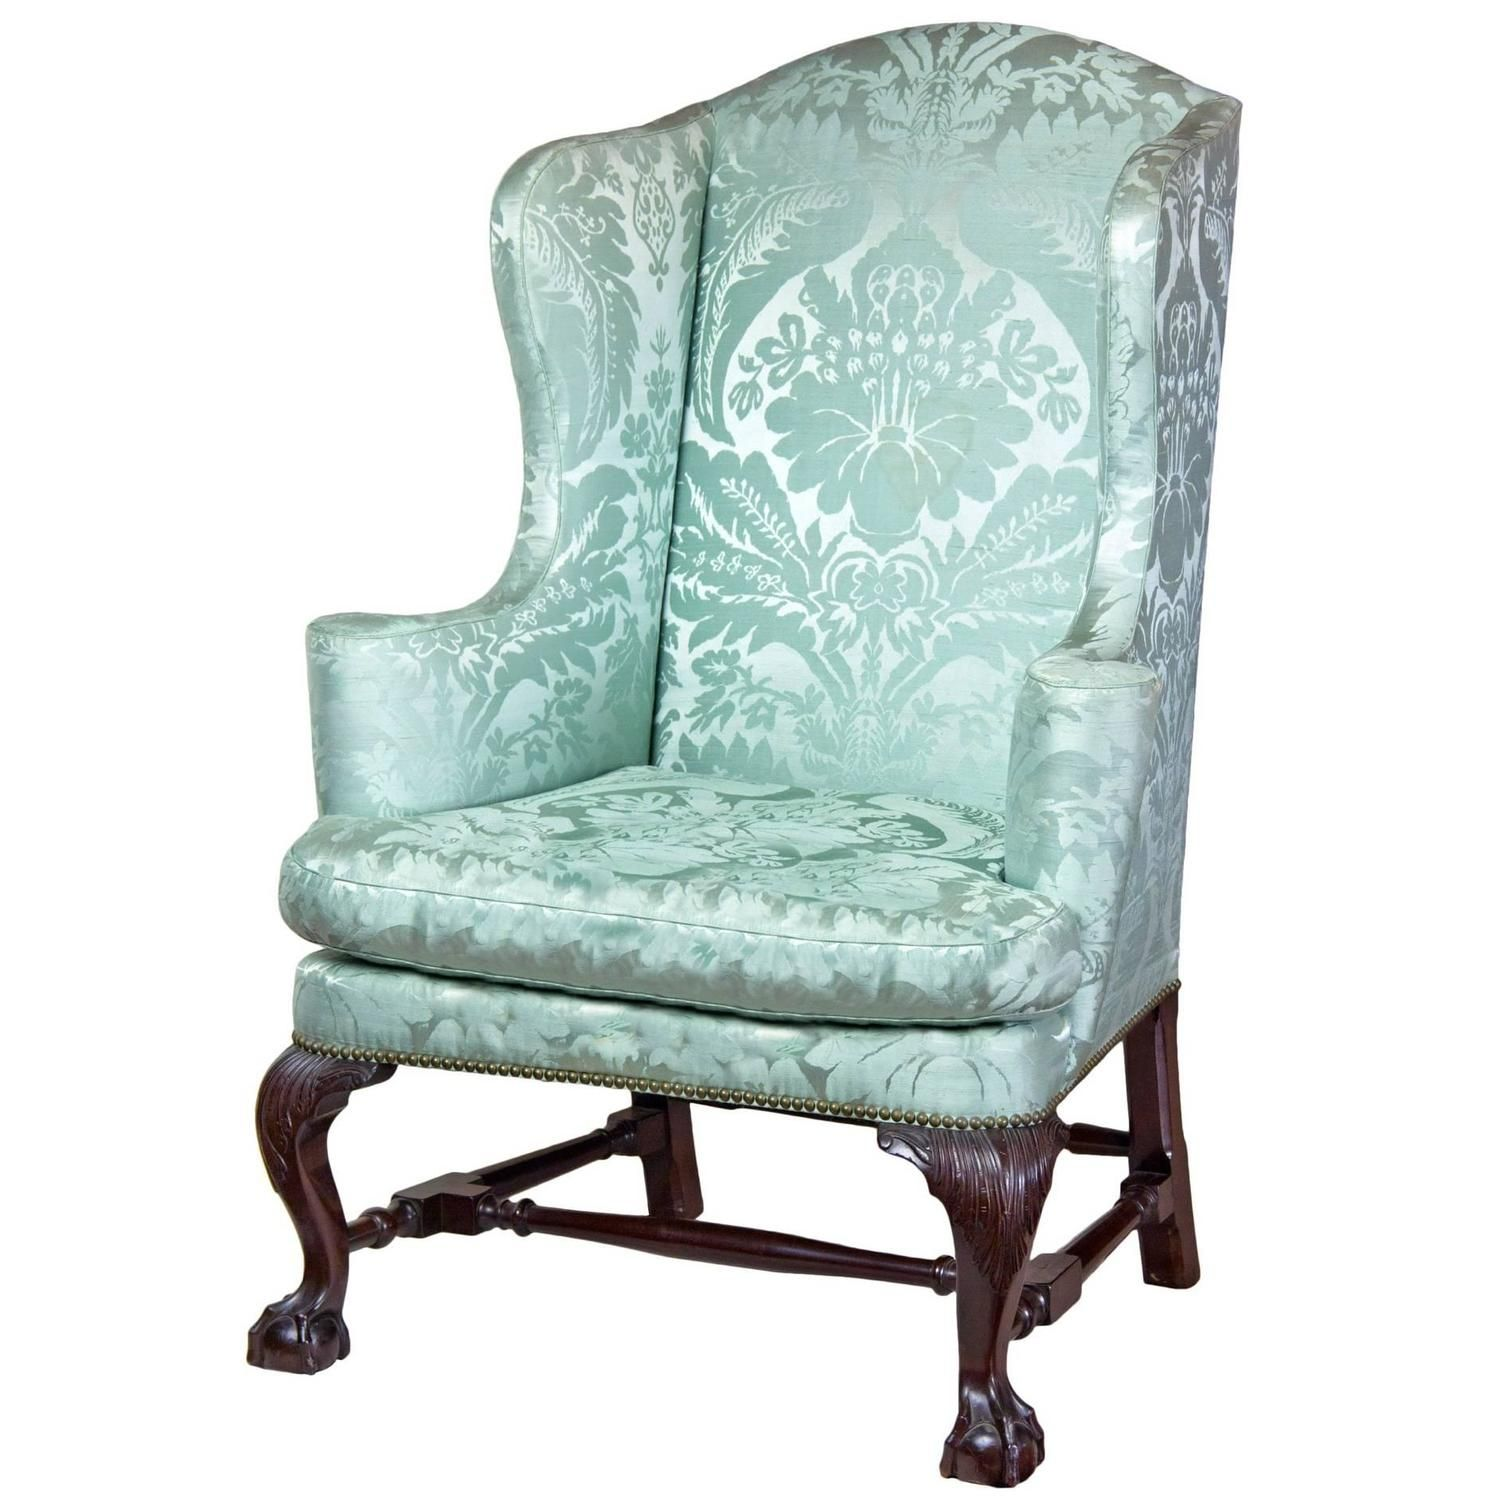 Upholstered Wing Chair w/ Carved Knees Upholstered arm